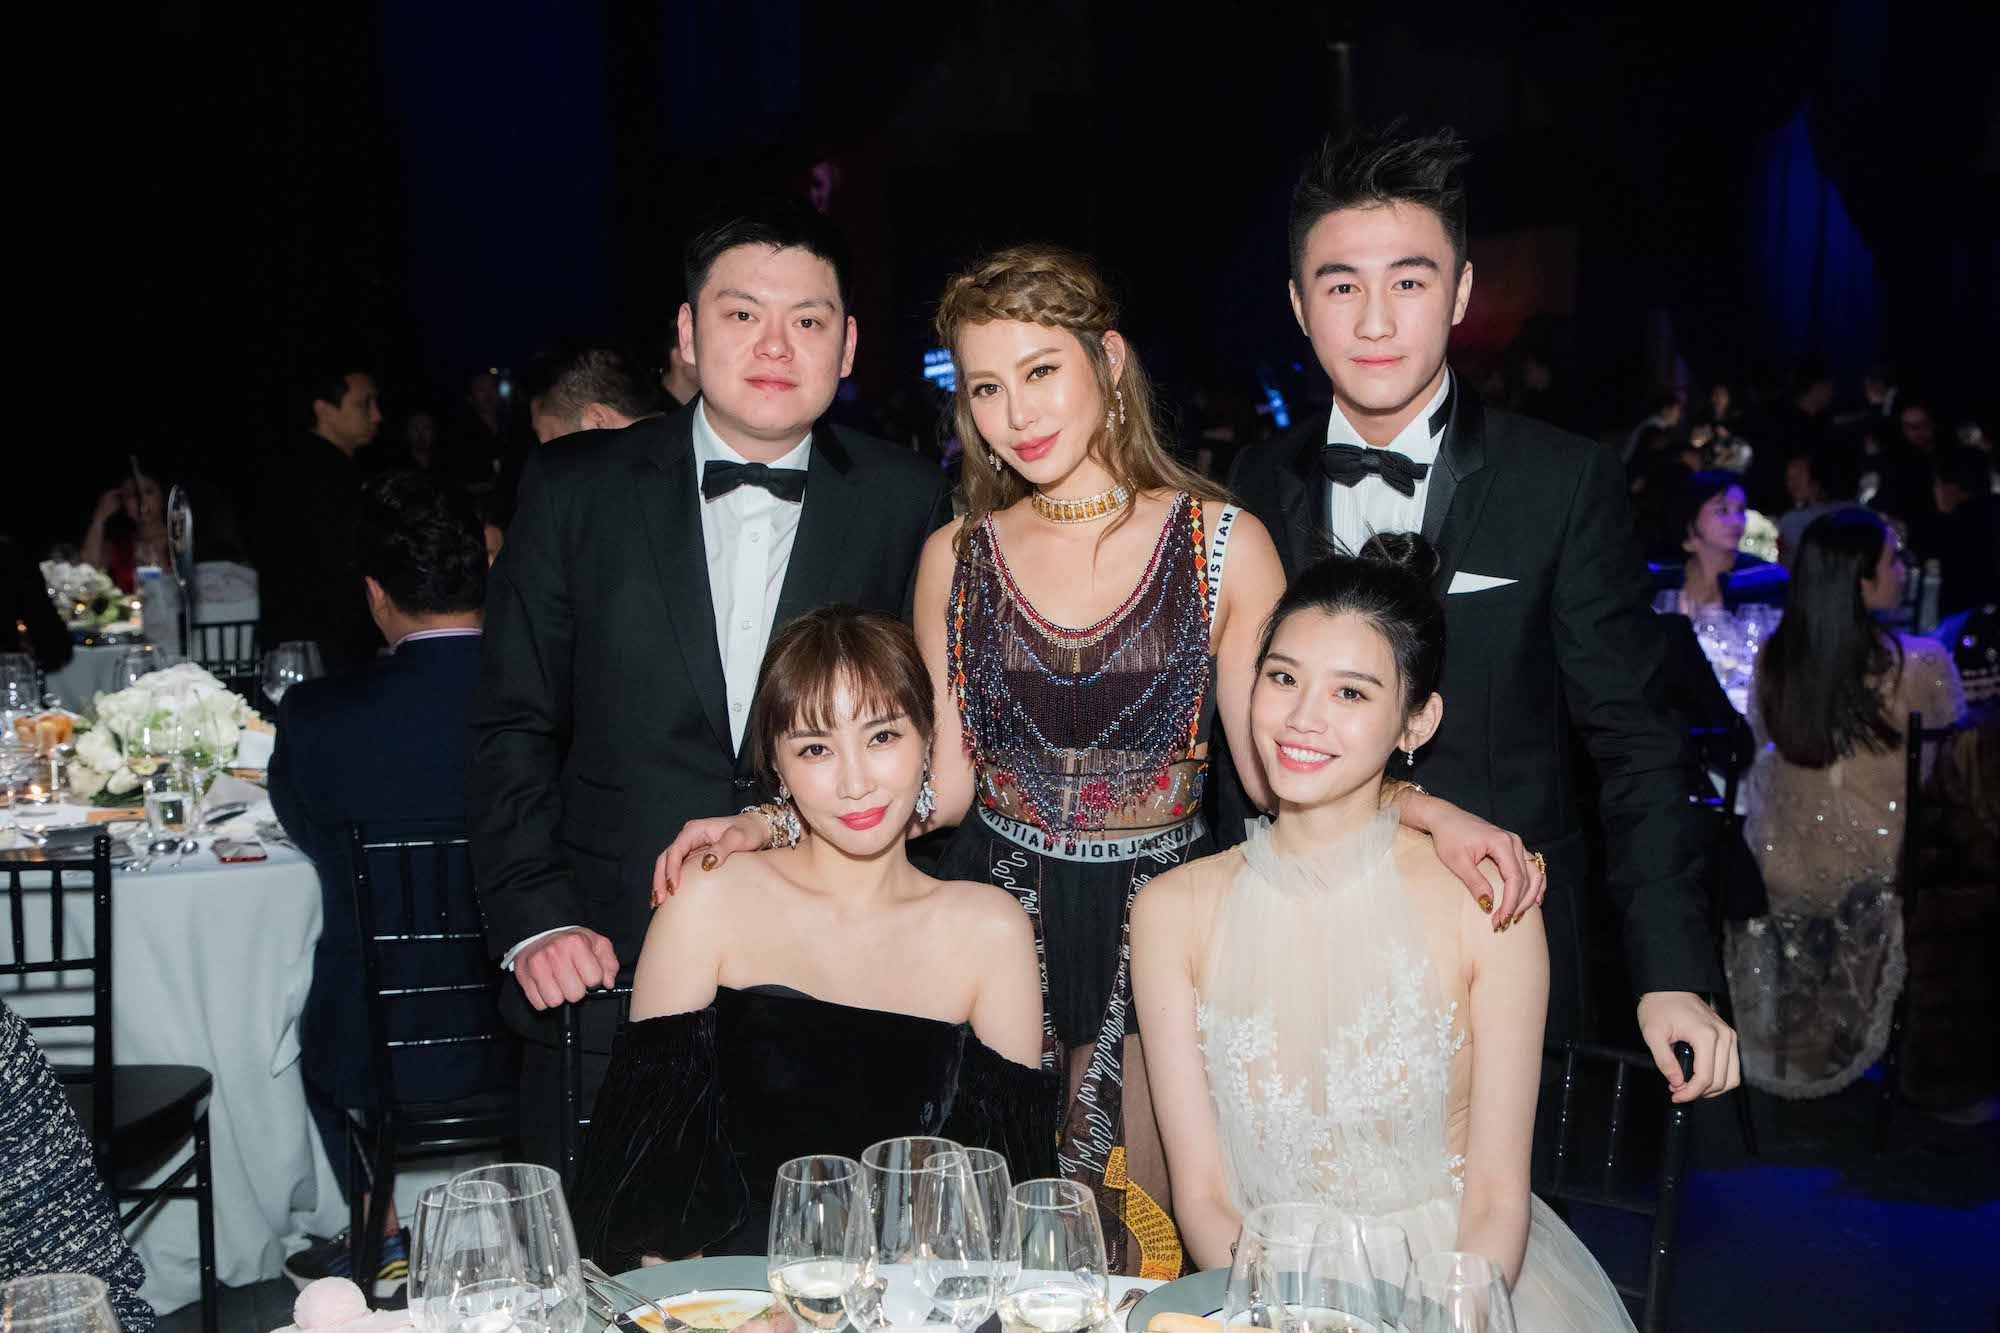 Standing: Lucas Lam, Eleanor Lam, Mario Ho Seated: Kylie Ying, Ming Xi